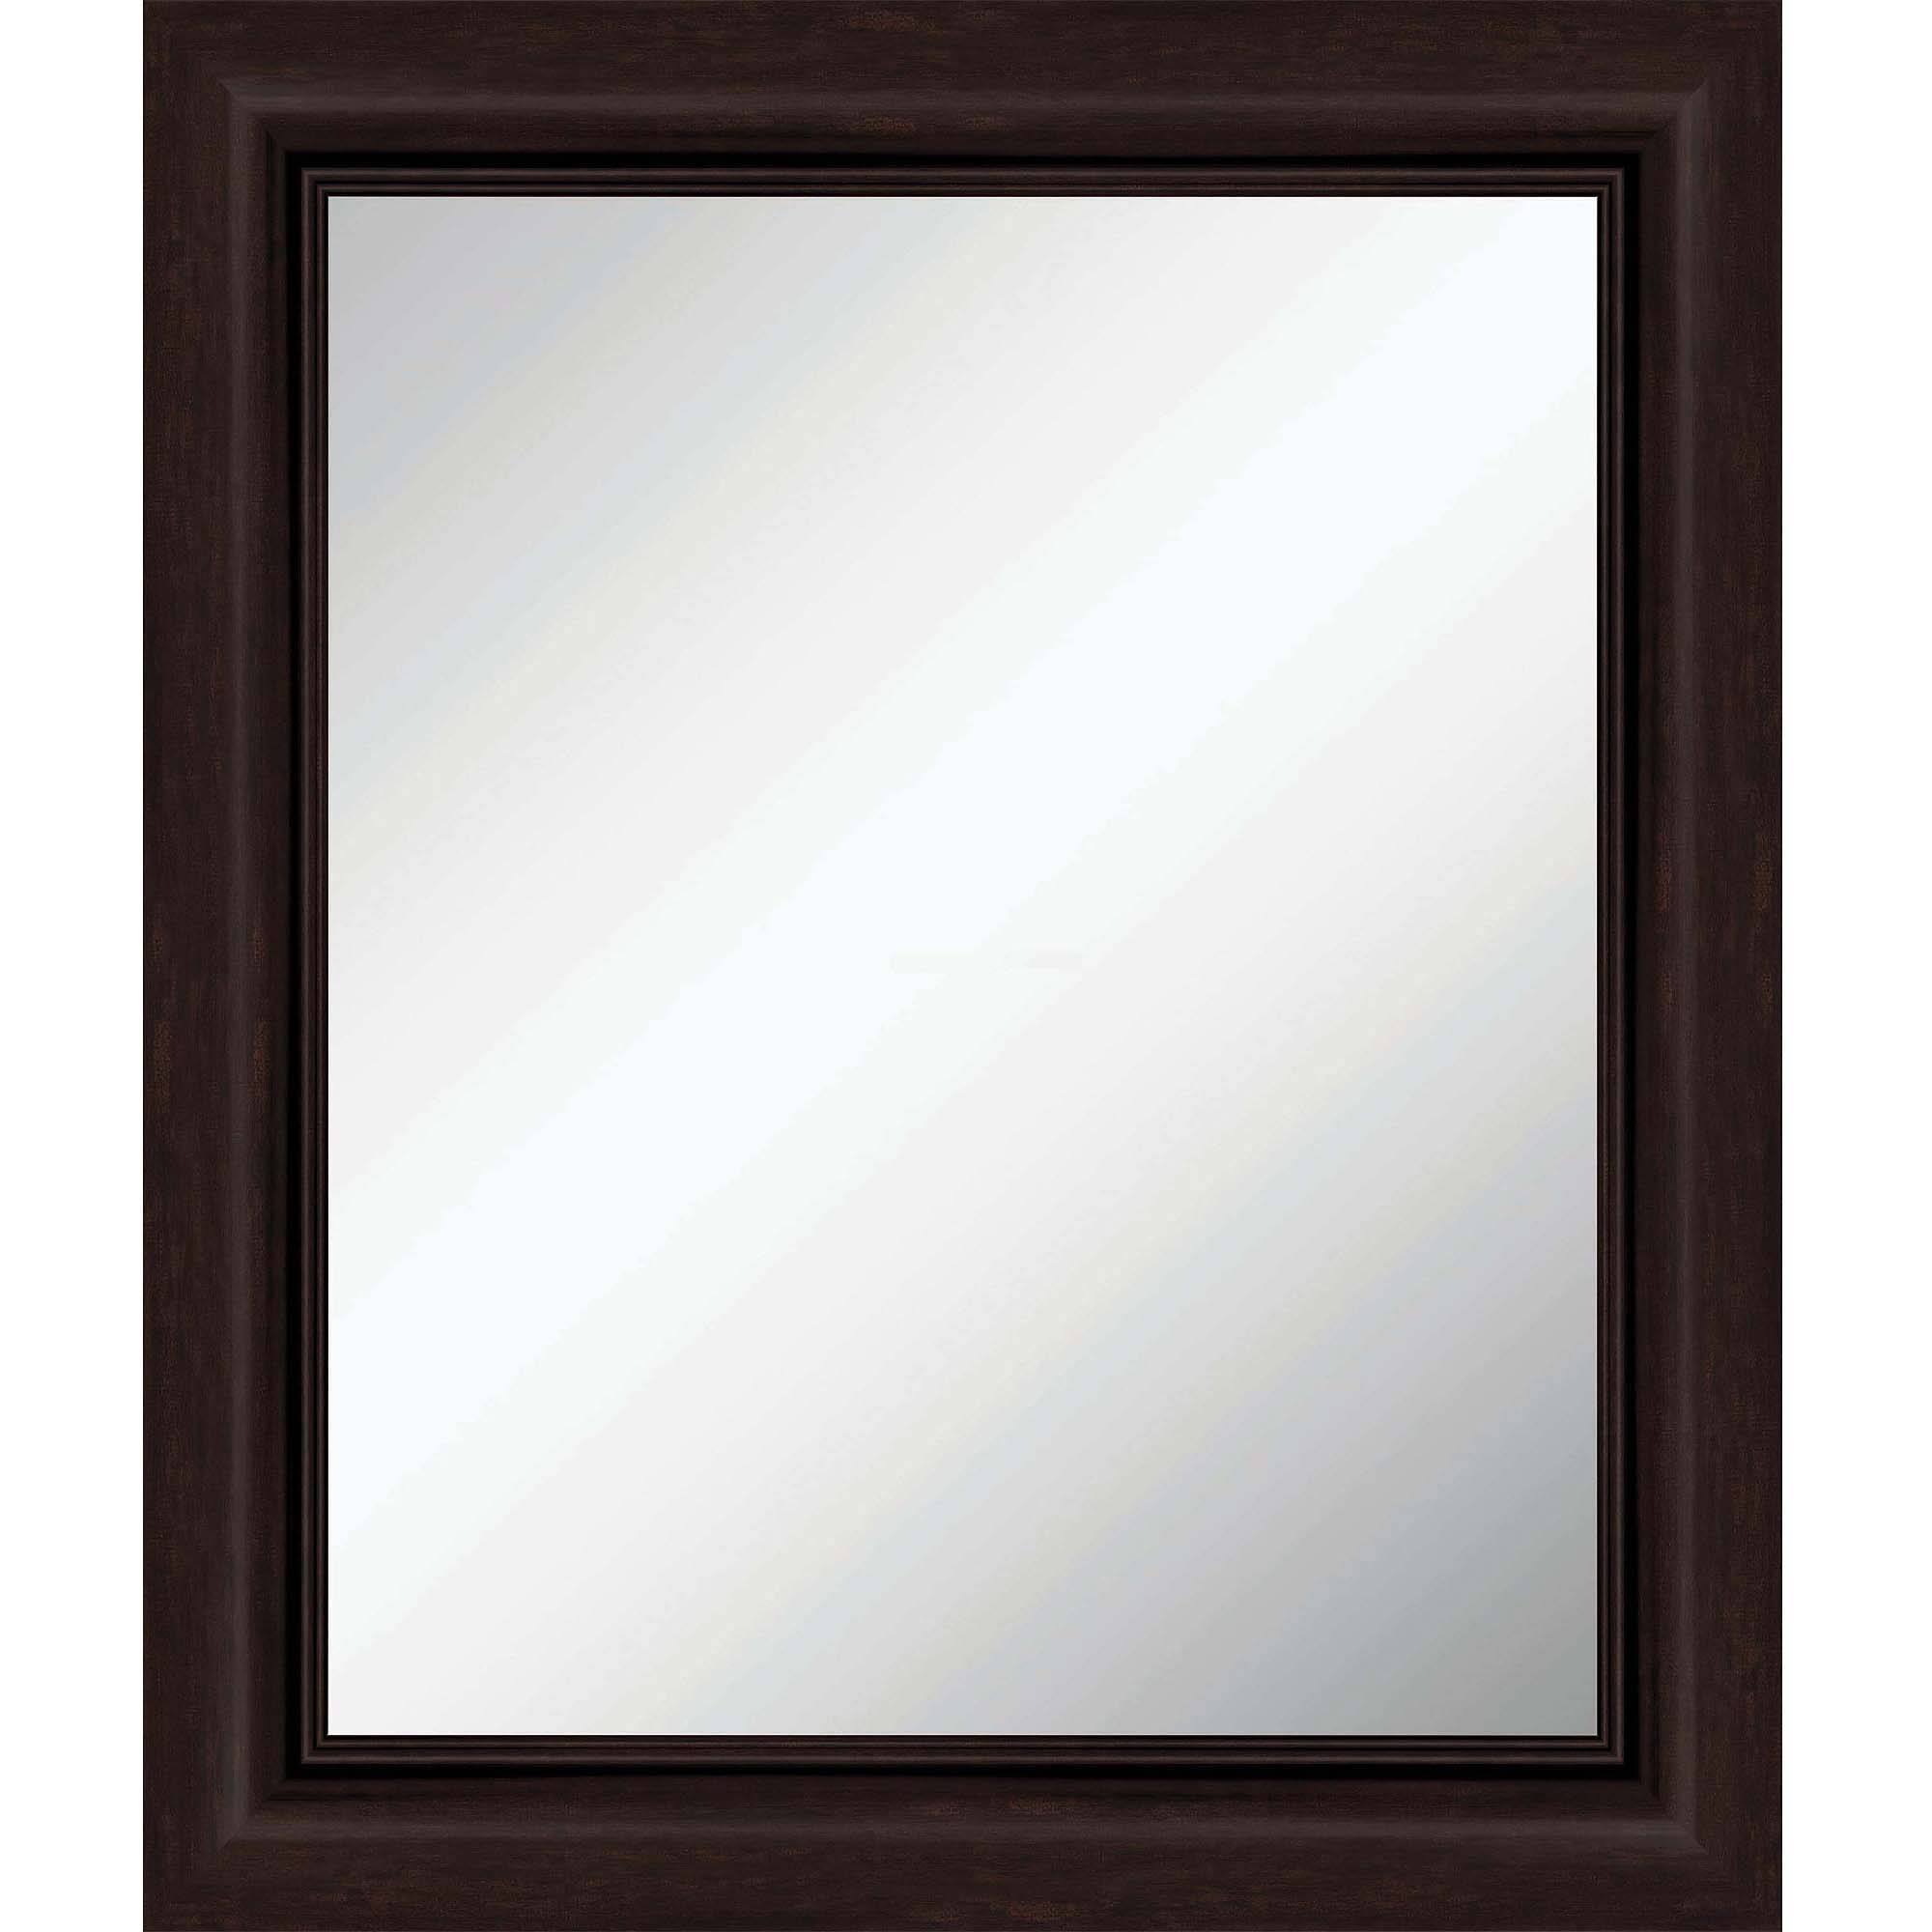 Mainstays 5-Piece Mirror Set, Black - Walmart intended for Unusual Shaped Mirrors (Image 13 of 25)